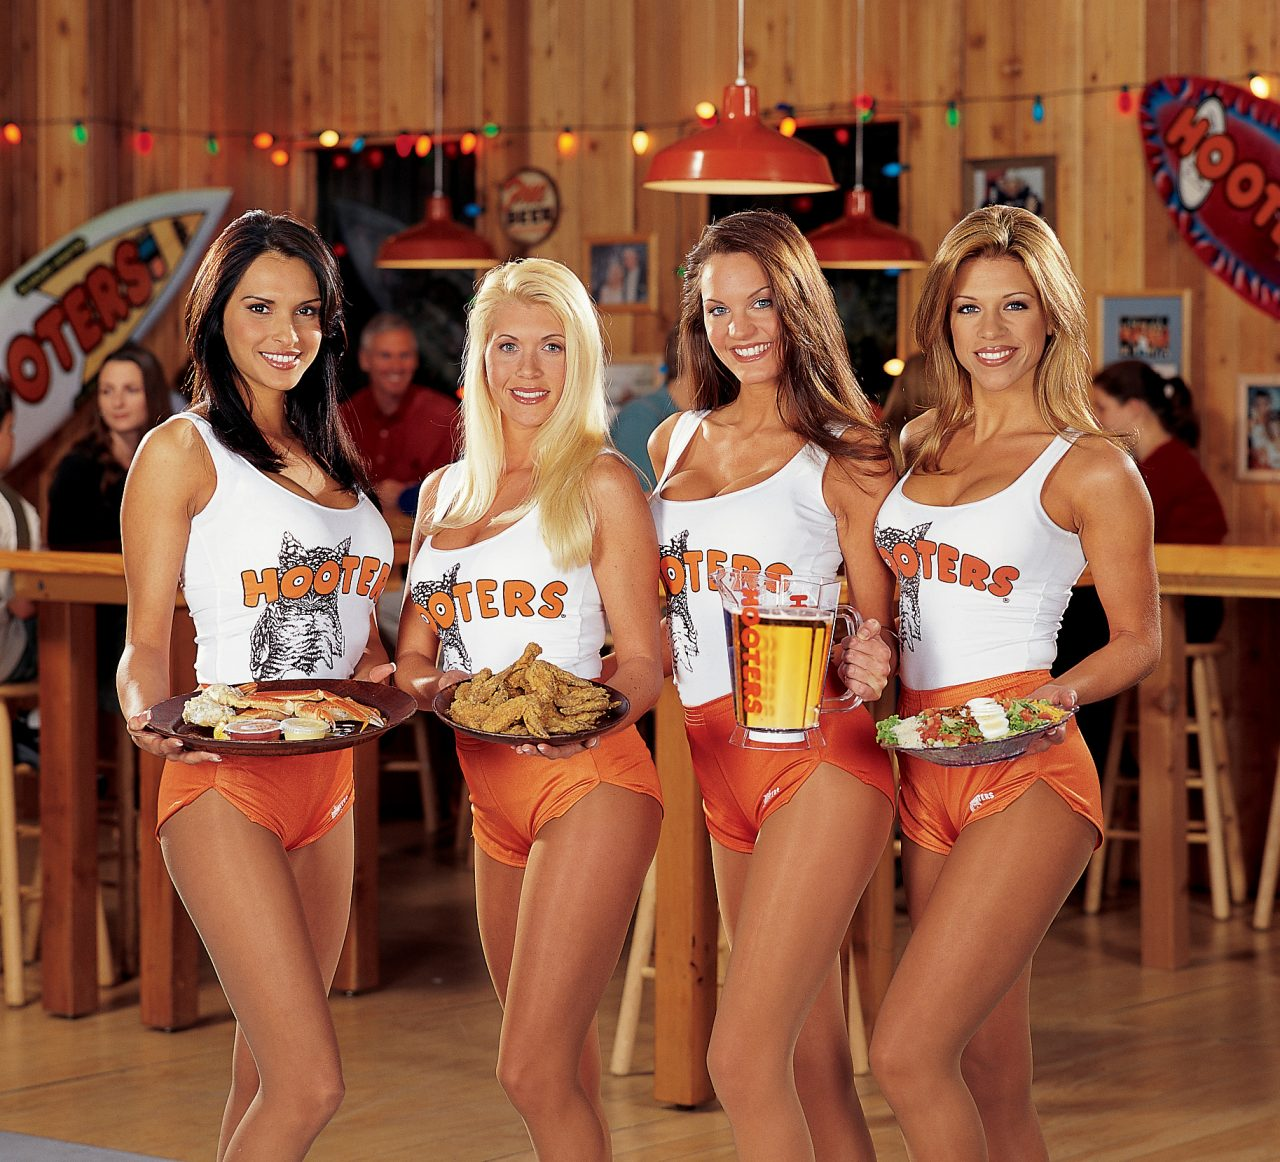 Hooters waitresses holding food and beer. Used to depict UoM staff expenses spending in 2019.